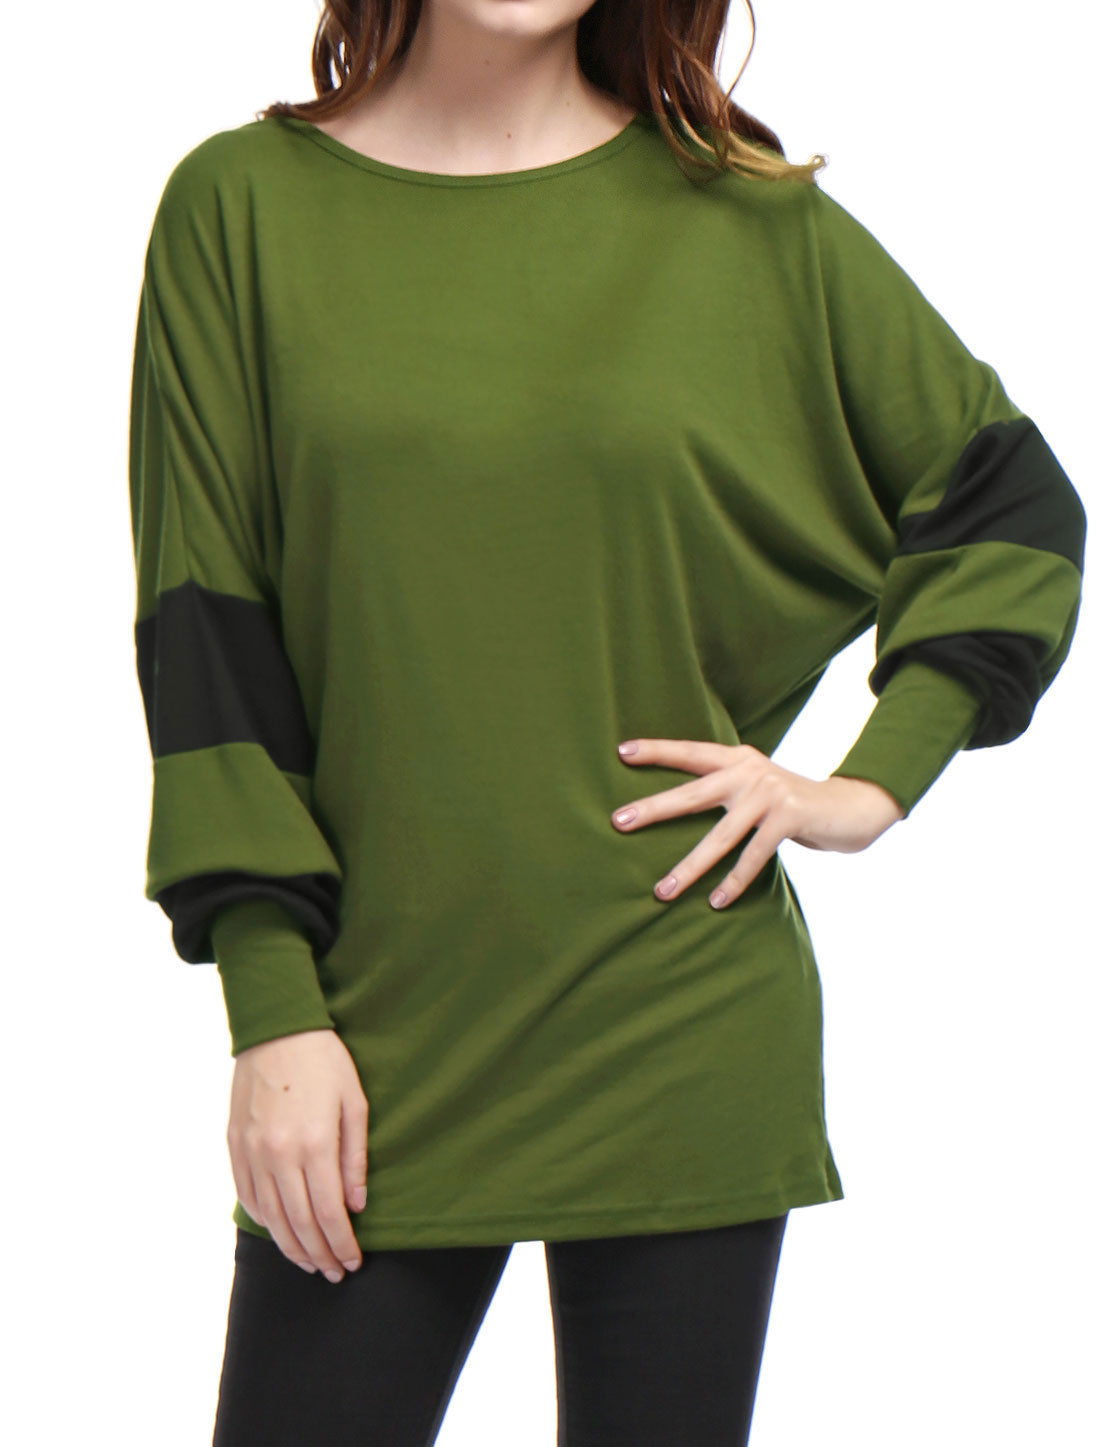 Women Color Block Batwing Loose Tunic Top Green S